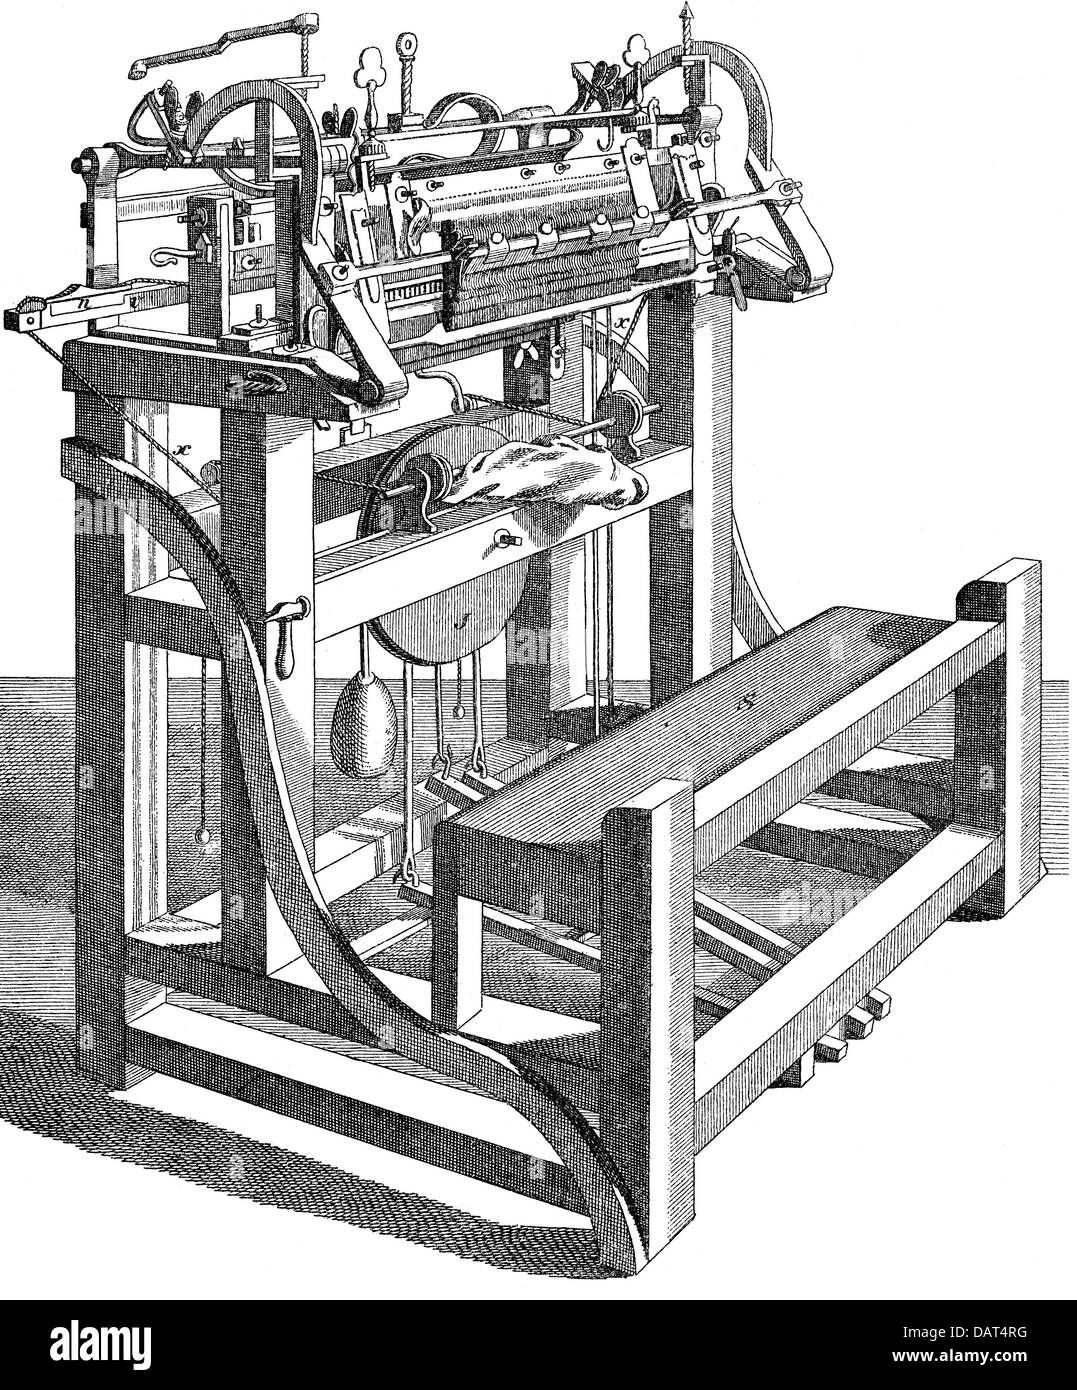 technics, spinning / weaving, stocking frame, after Langsdorf and Wassermann, wood engraving, 19th century, 19th - Stock Image